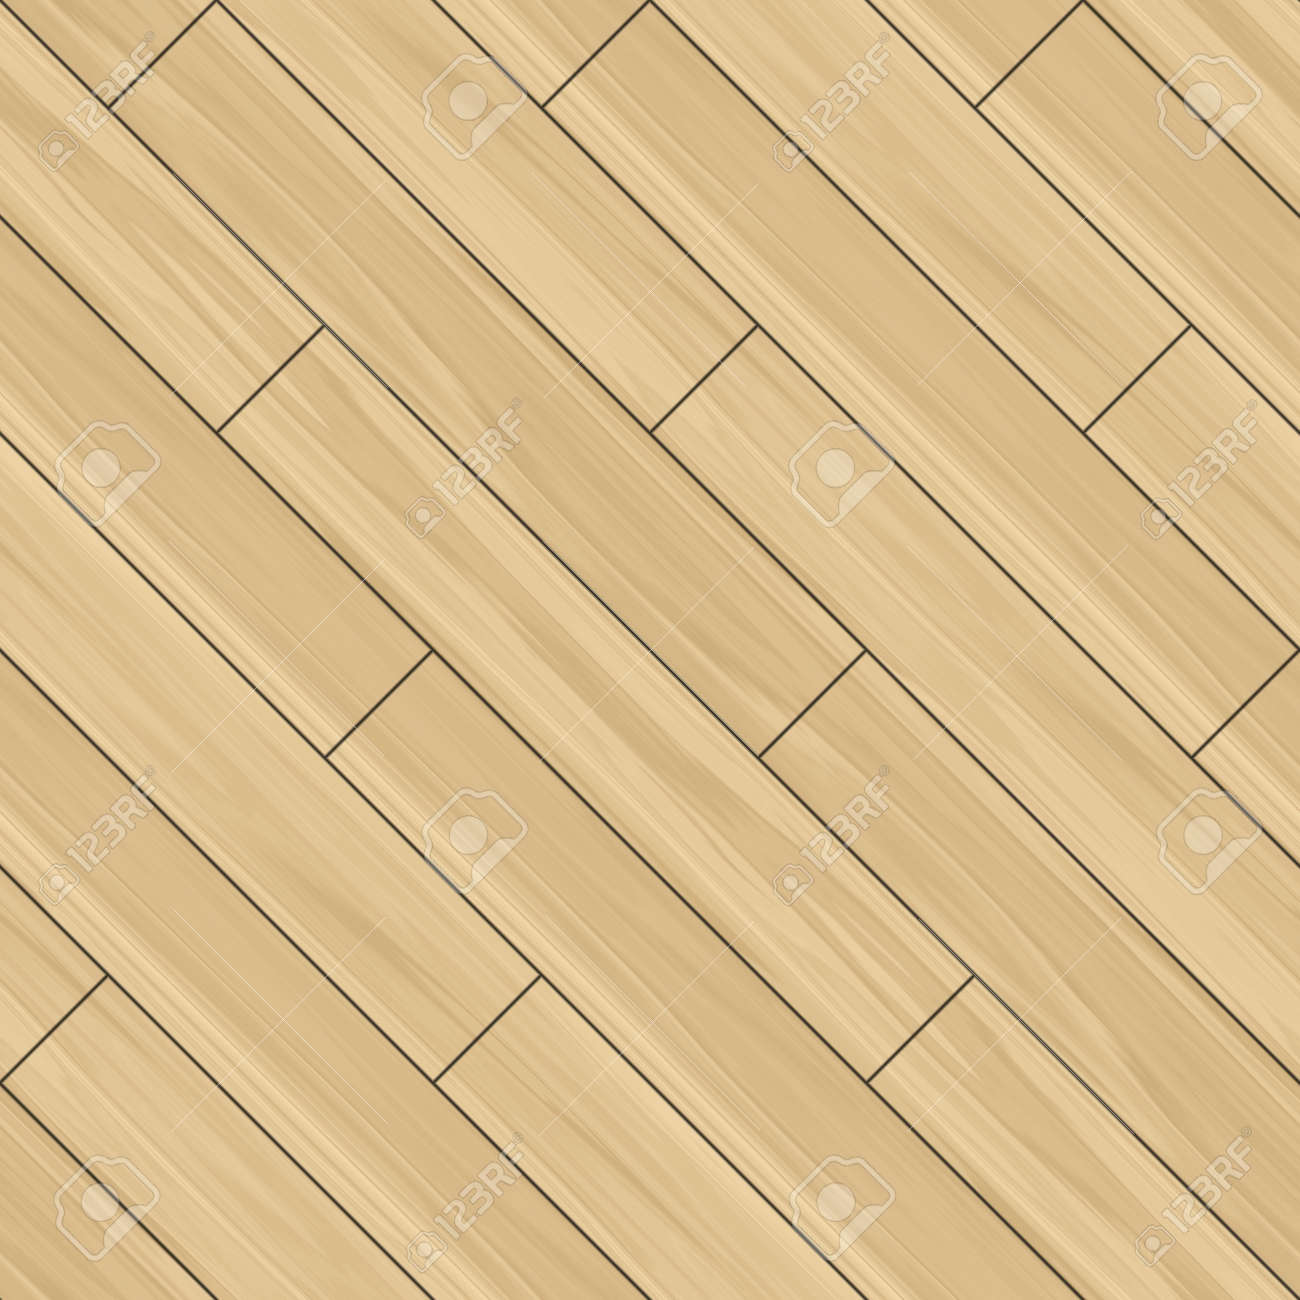 wood floor texture tile. Wood Flooring Seamless Texture Tile Stock Photo  13014852 Picture And